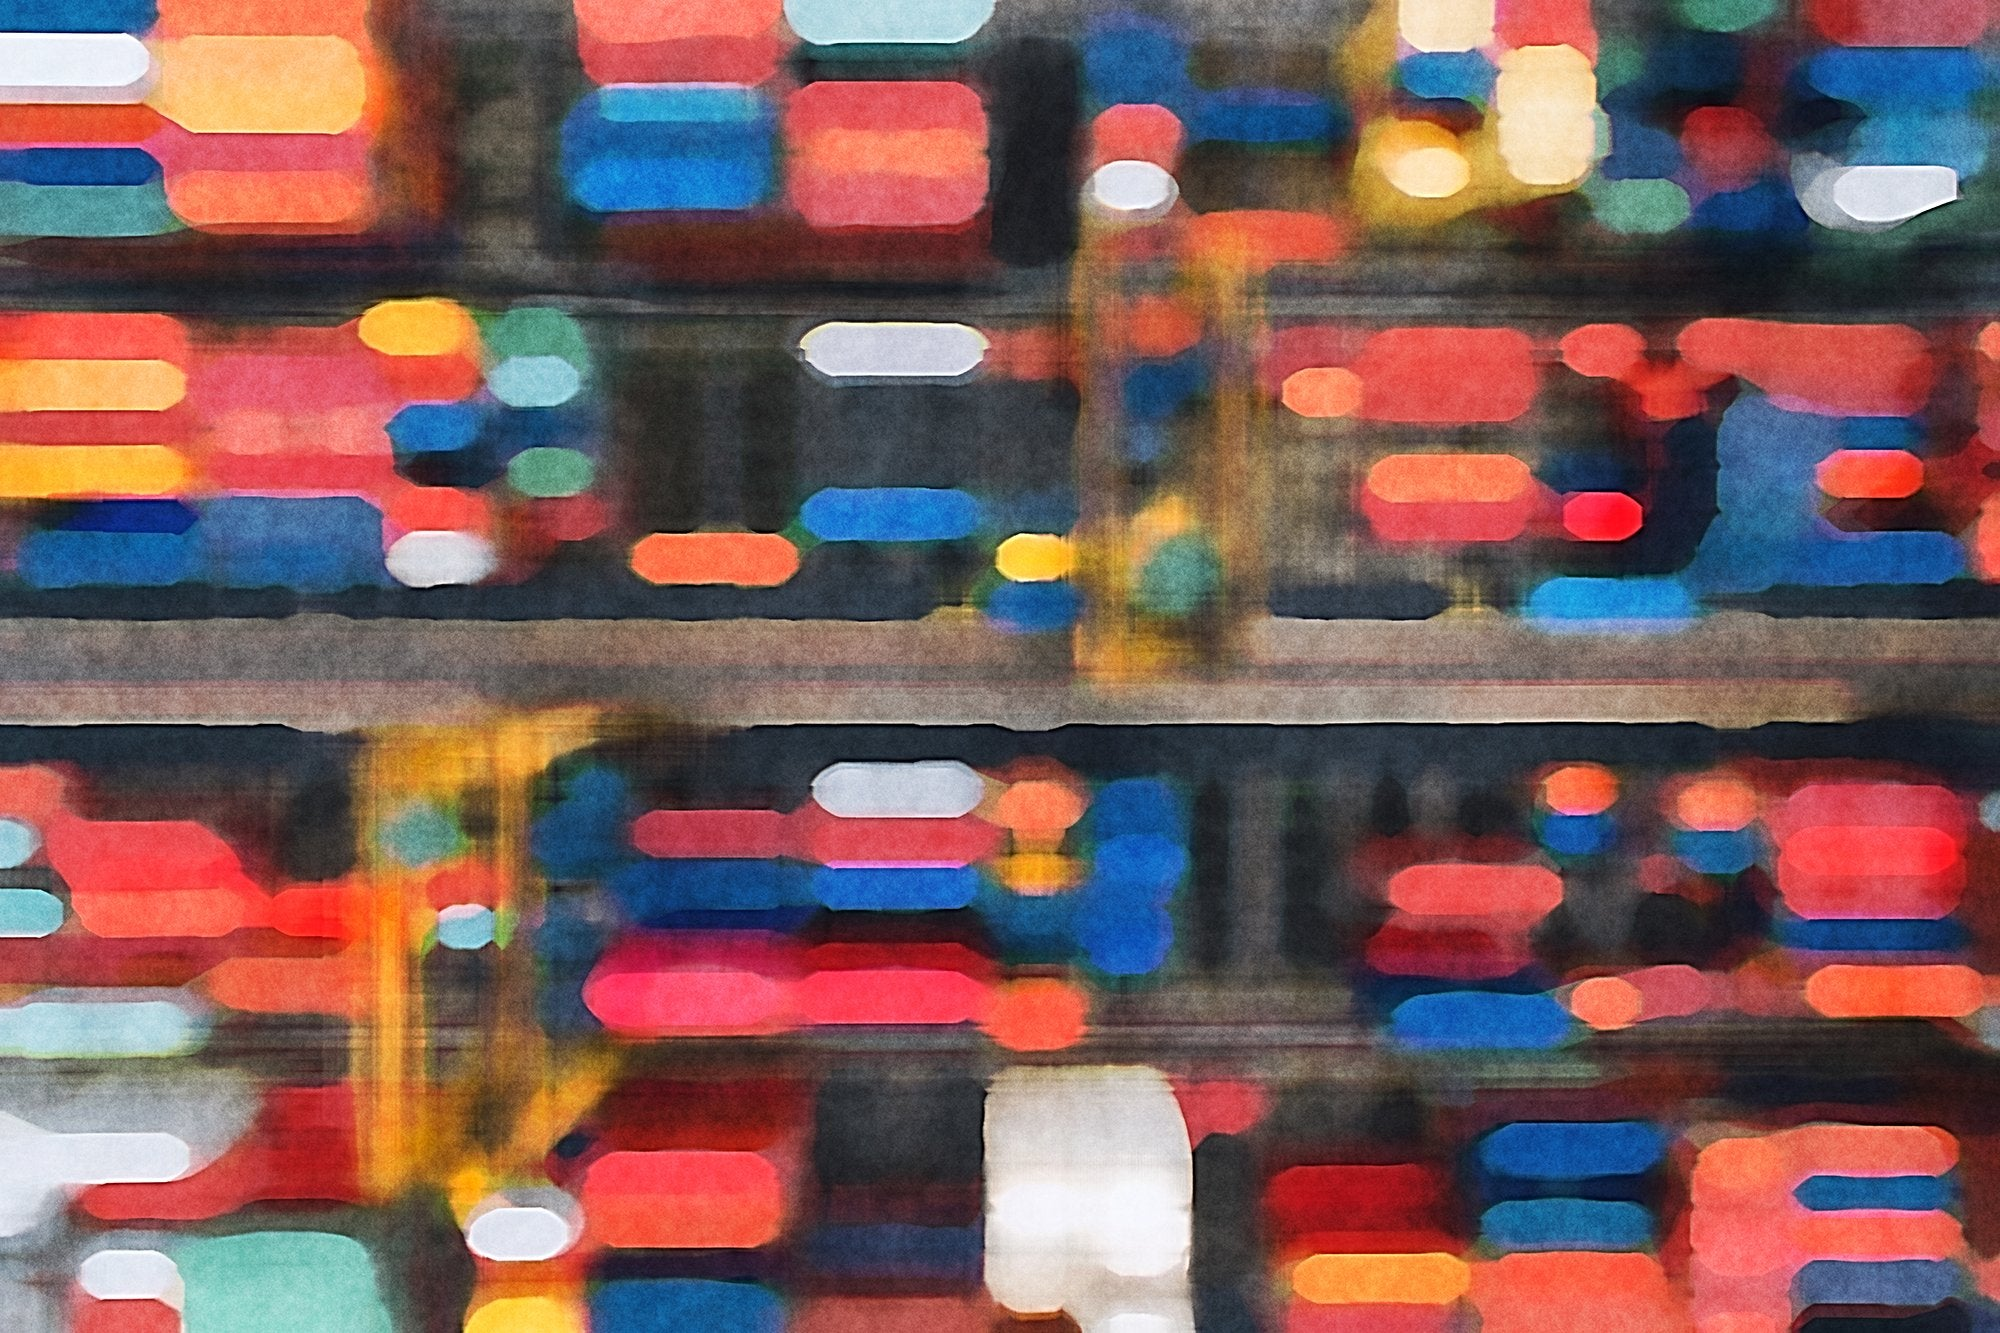 Shipping Containers No. 4, Reworked, Series 1